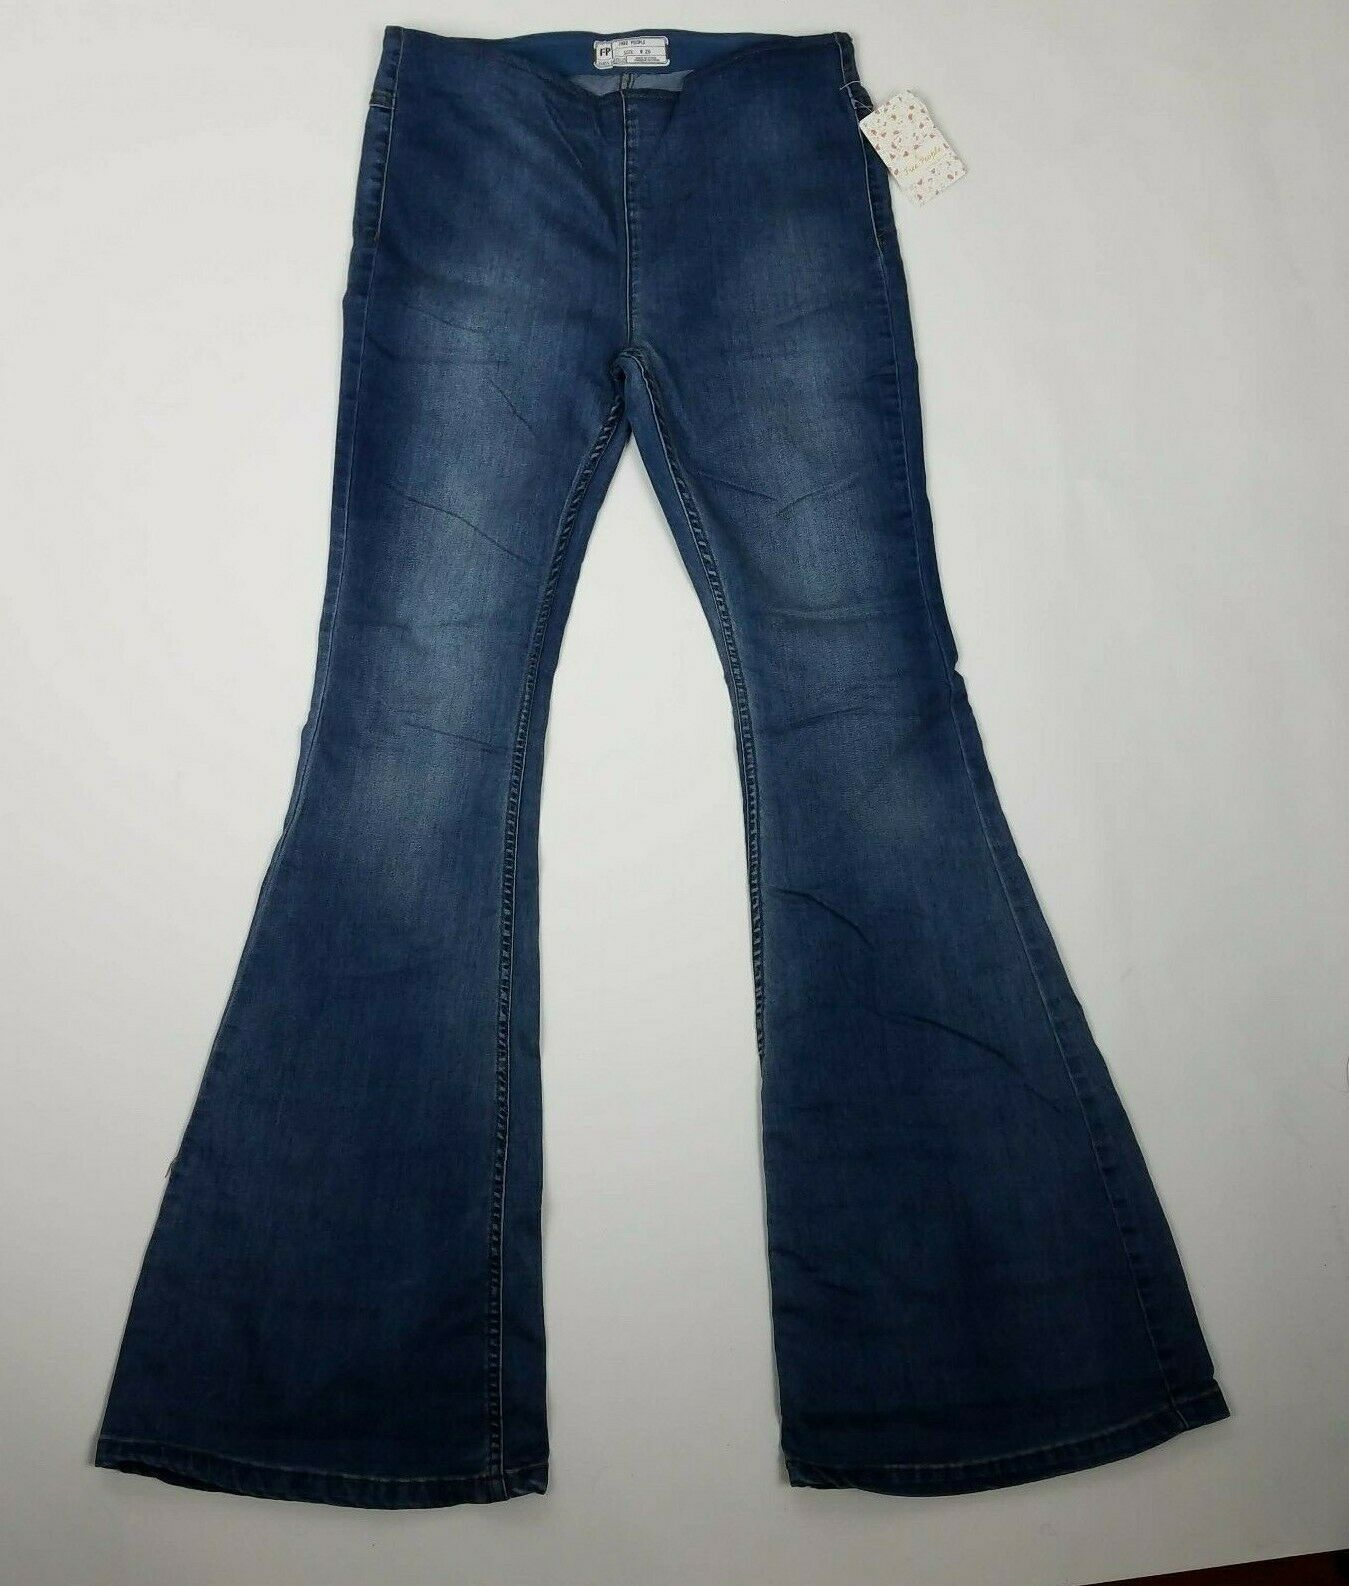 Free People Womens Pull On Flare Jeans Sz 29 bluee G2